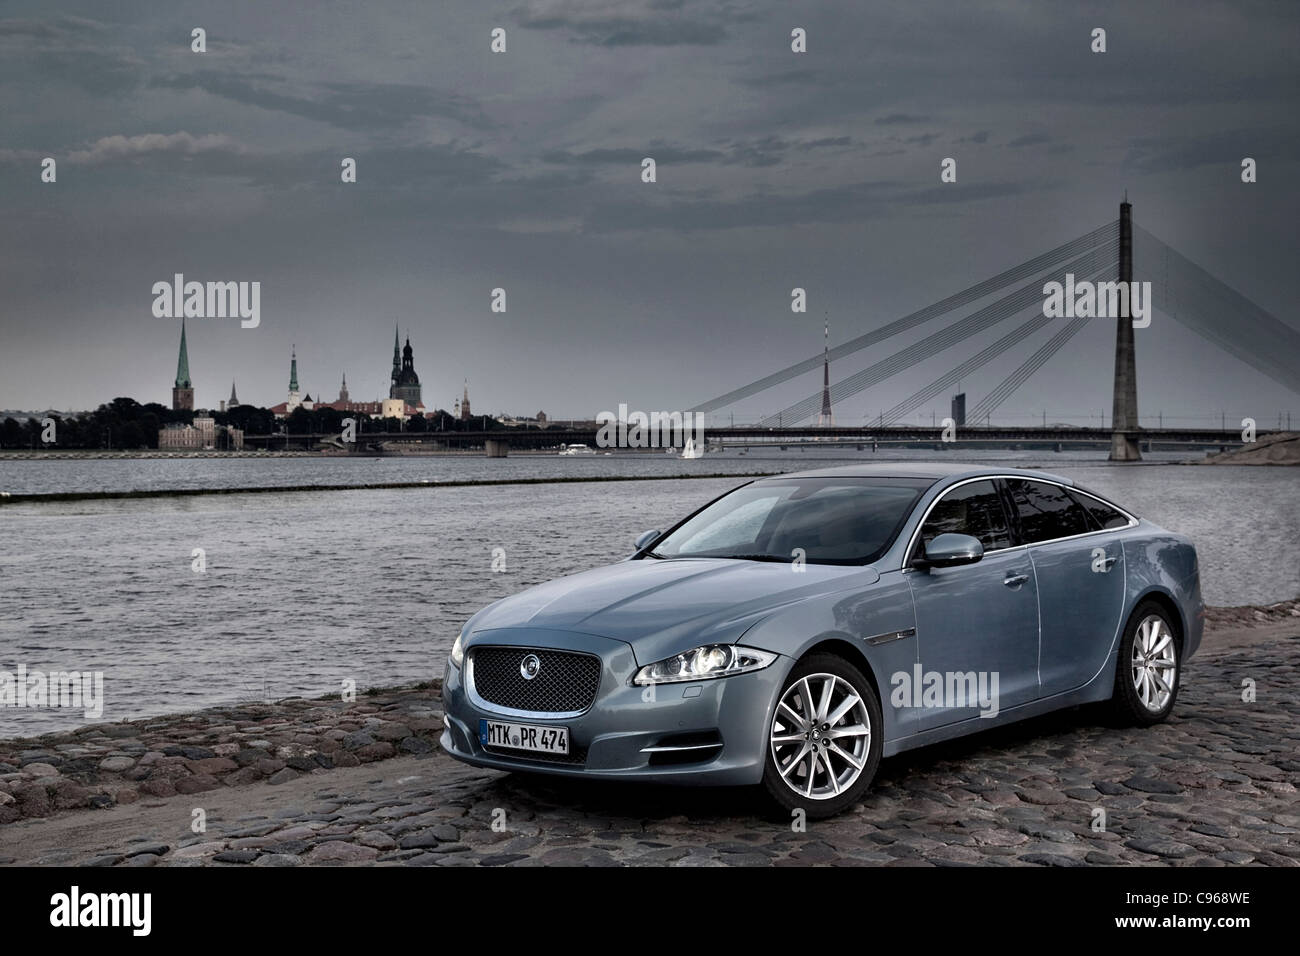 Jaguar XJ on the riverside in Riga Latvia - Stock Image